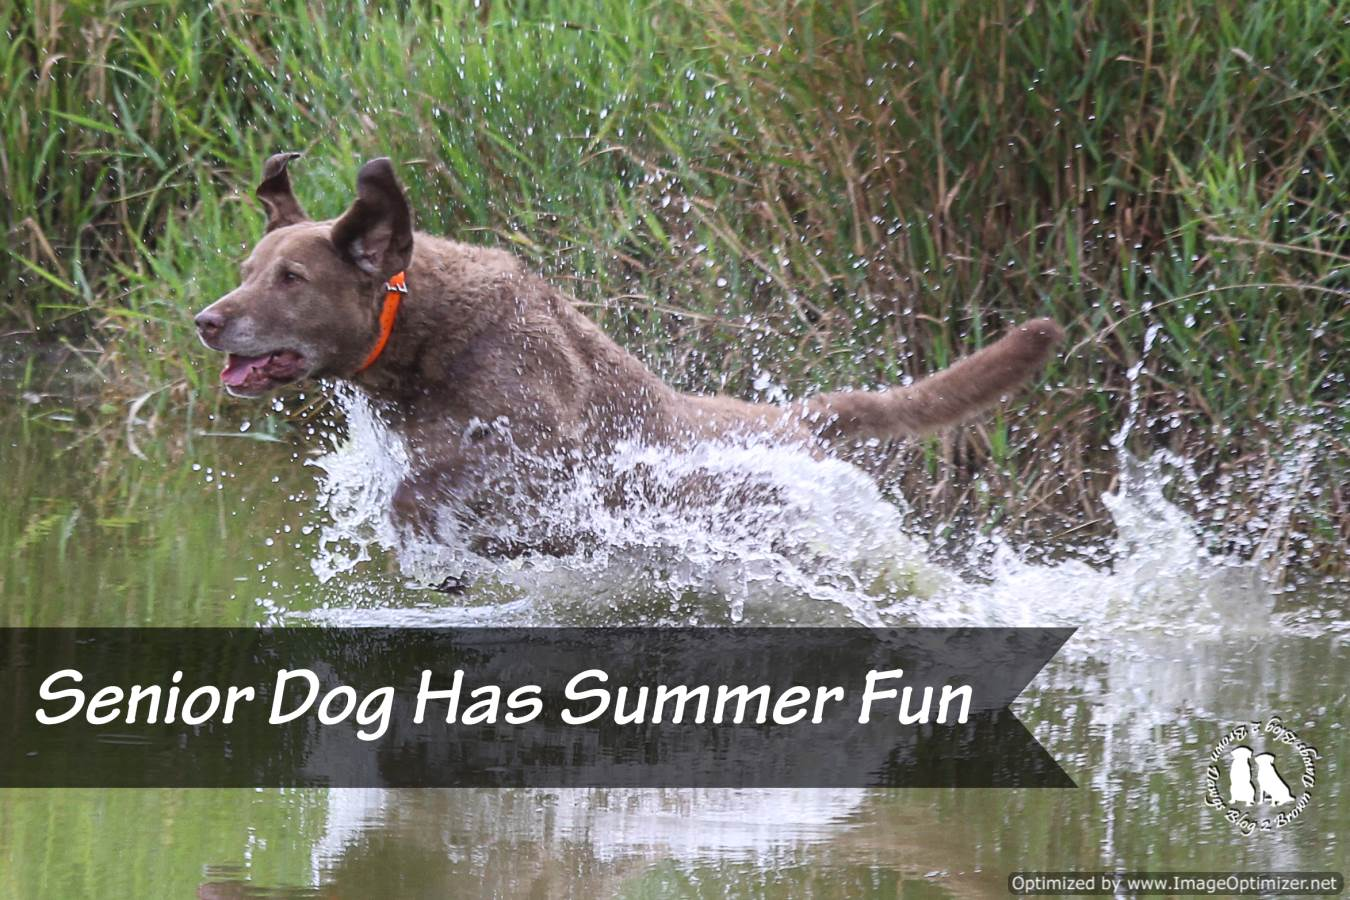 Senior Dog Has Summer Fun